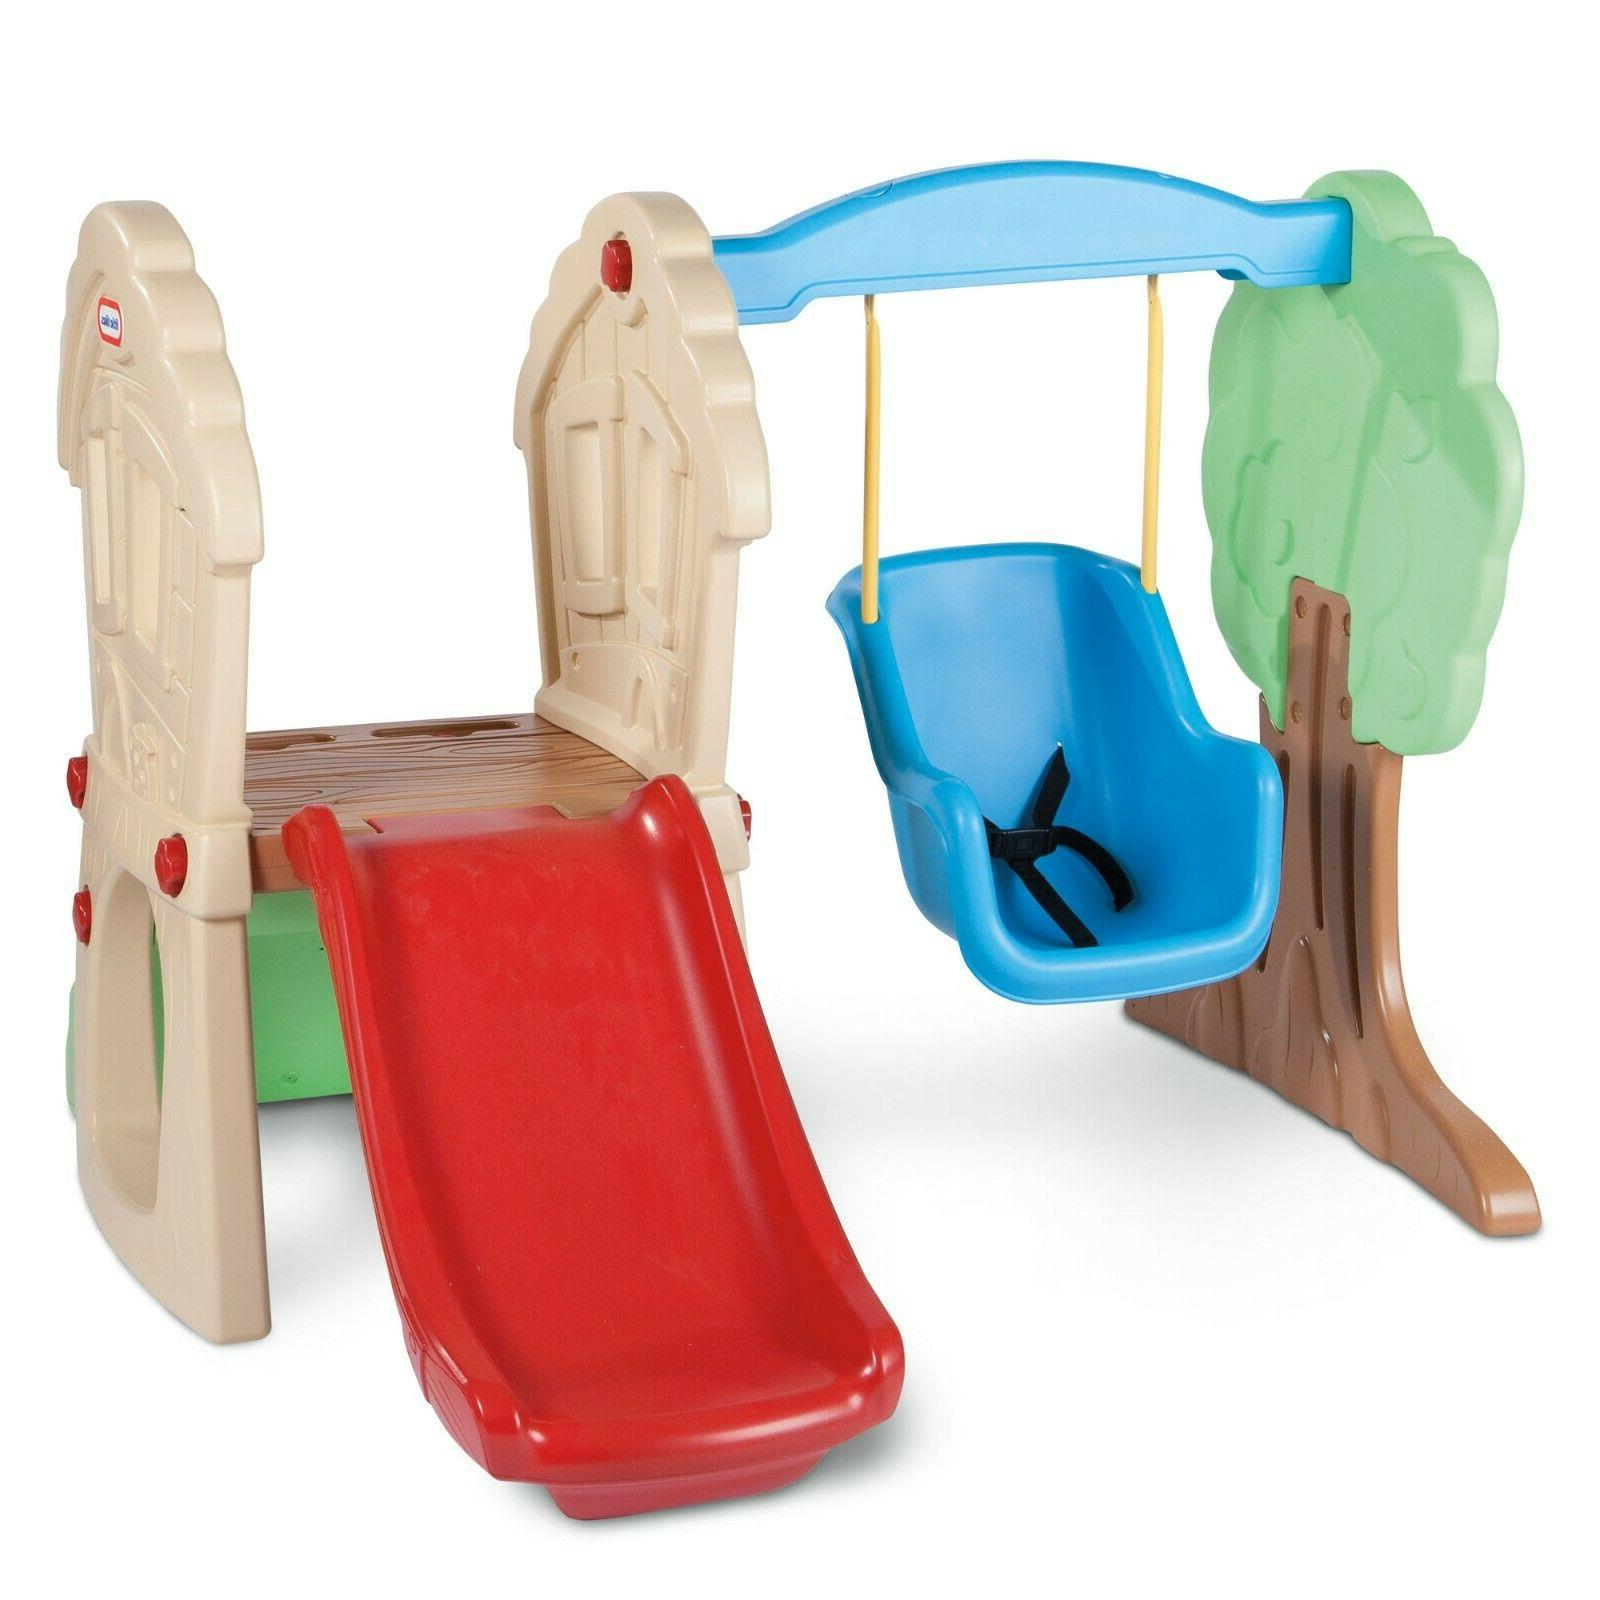 Little Tikes Hide & Seek Climber and Swing - Brown/Tan Indoo